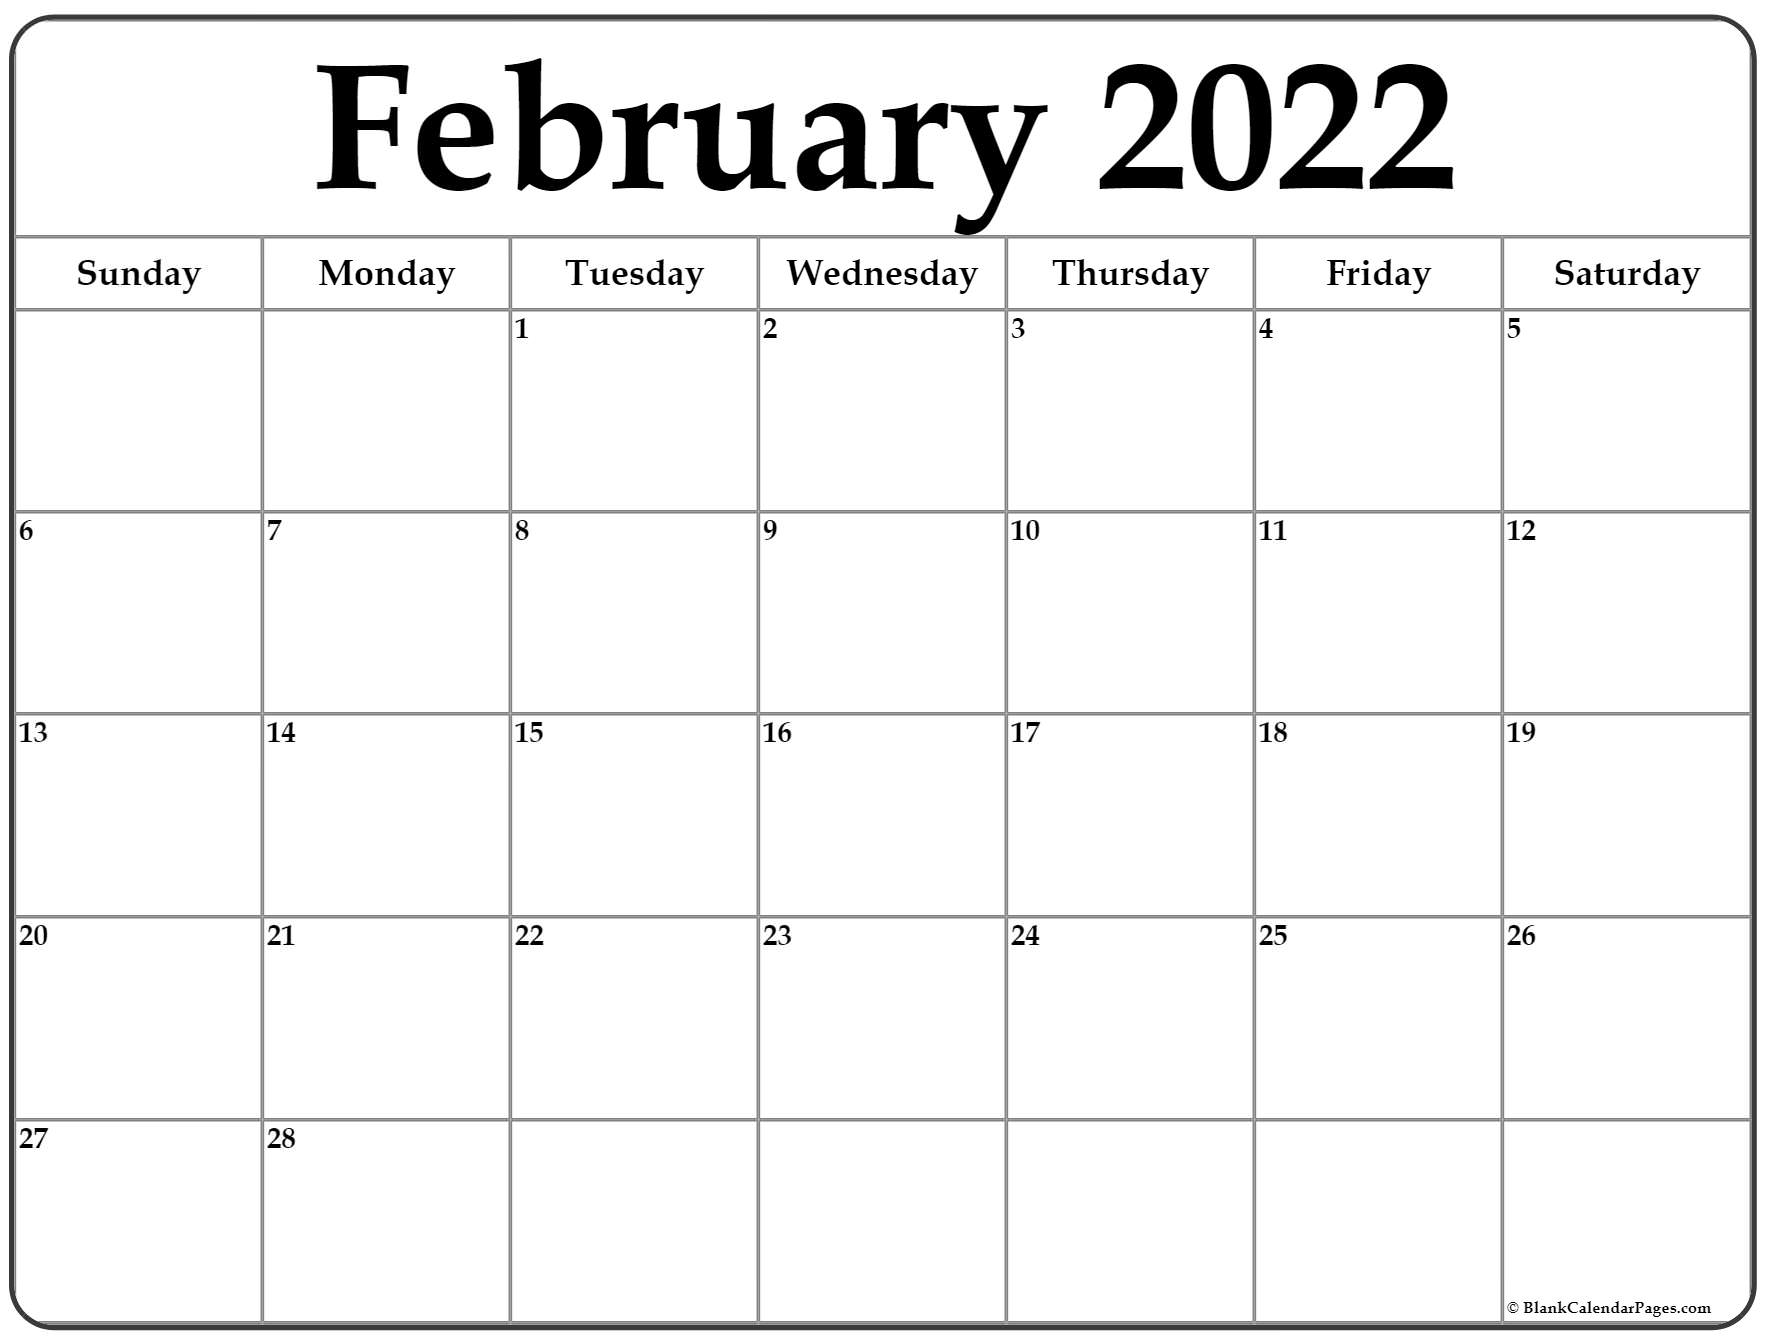 Download a free, printable calendar for 2021 to keep you organized in style. February 2022 calendar | free printable calendar templates